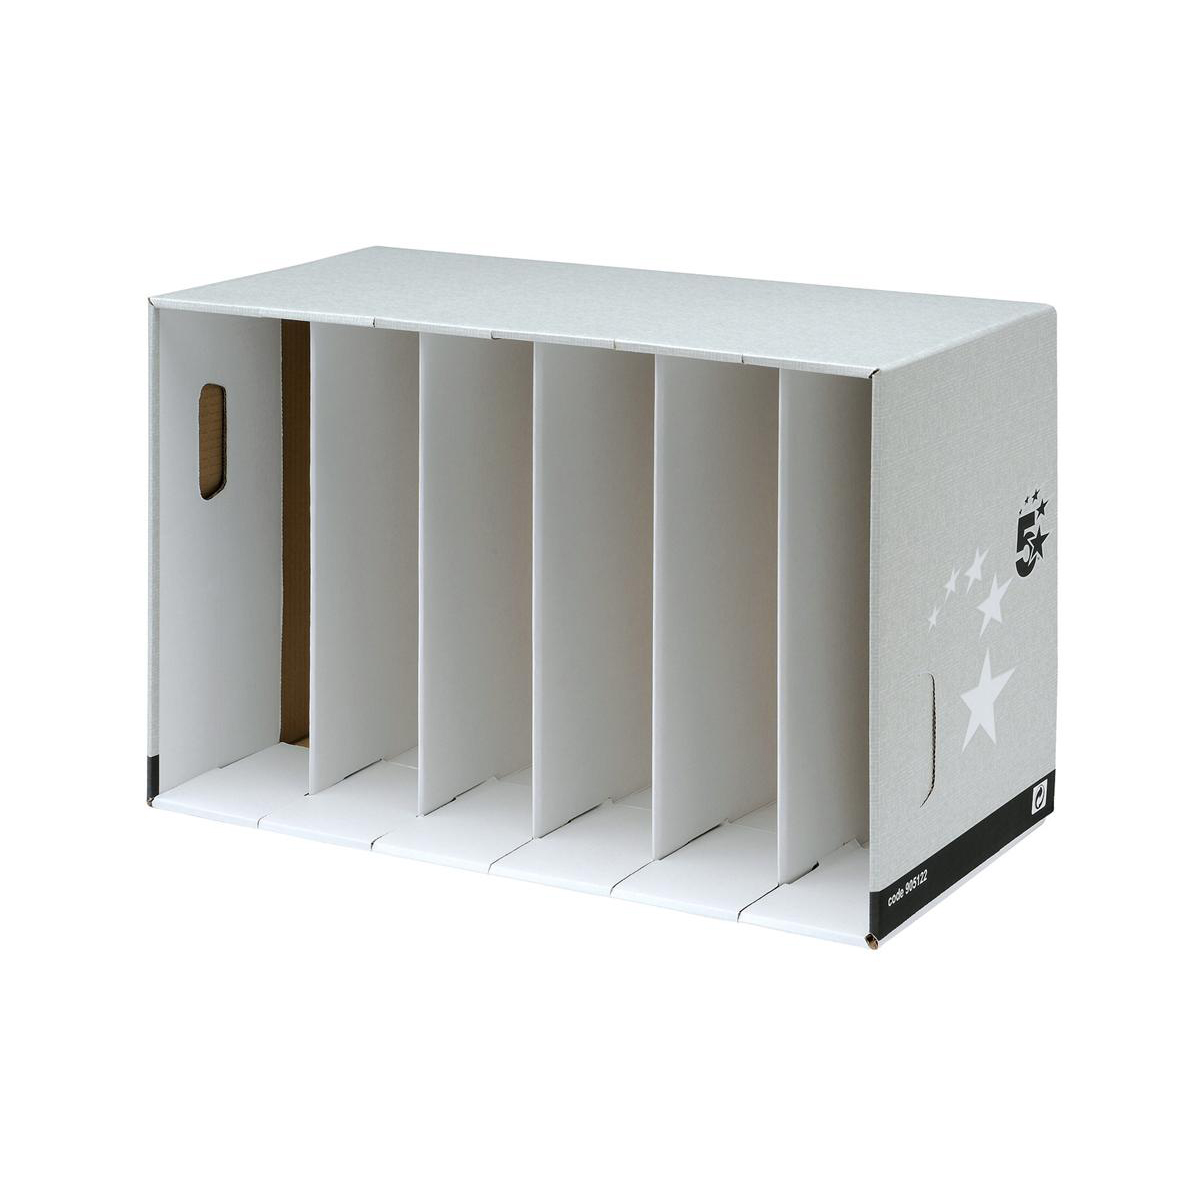 Image for 5 Star Facilities Lever Arch Module for 6 Files Grey [Pack 5]